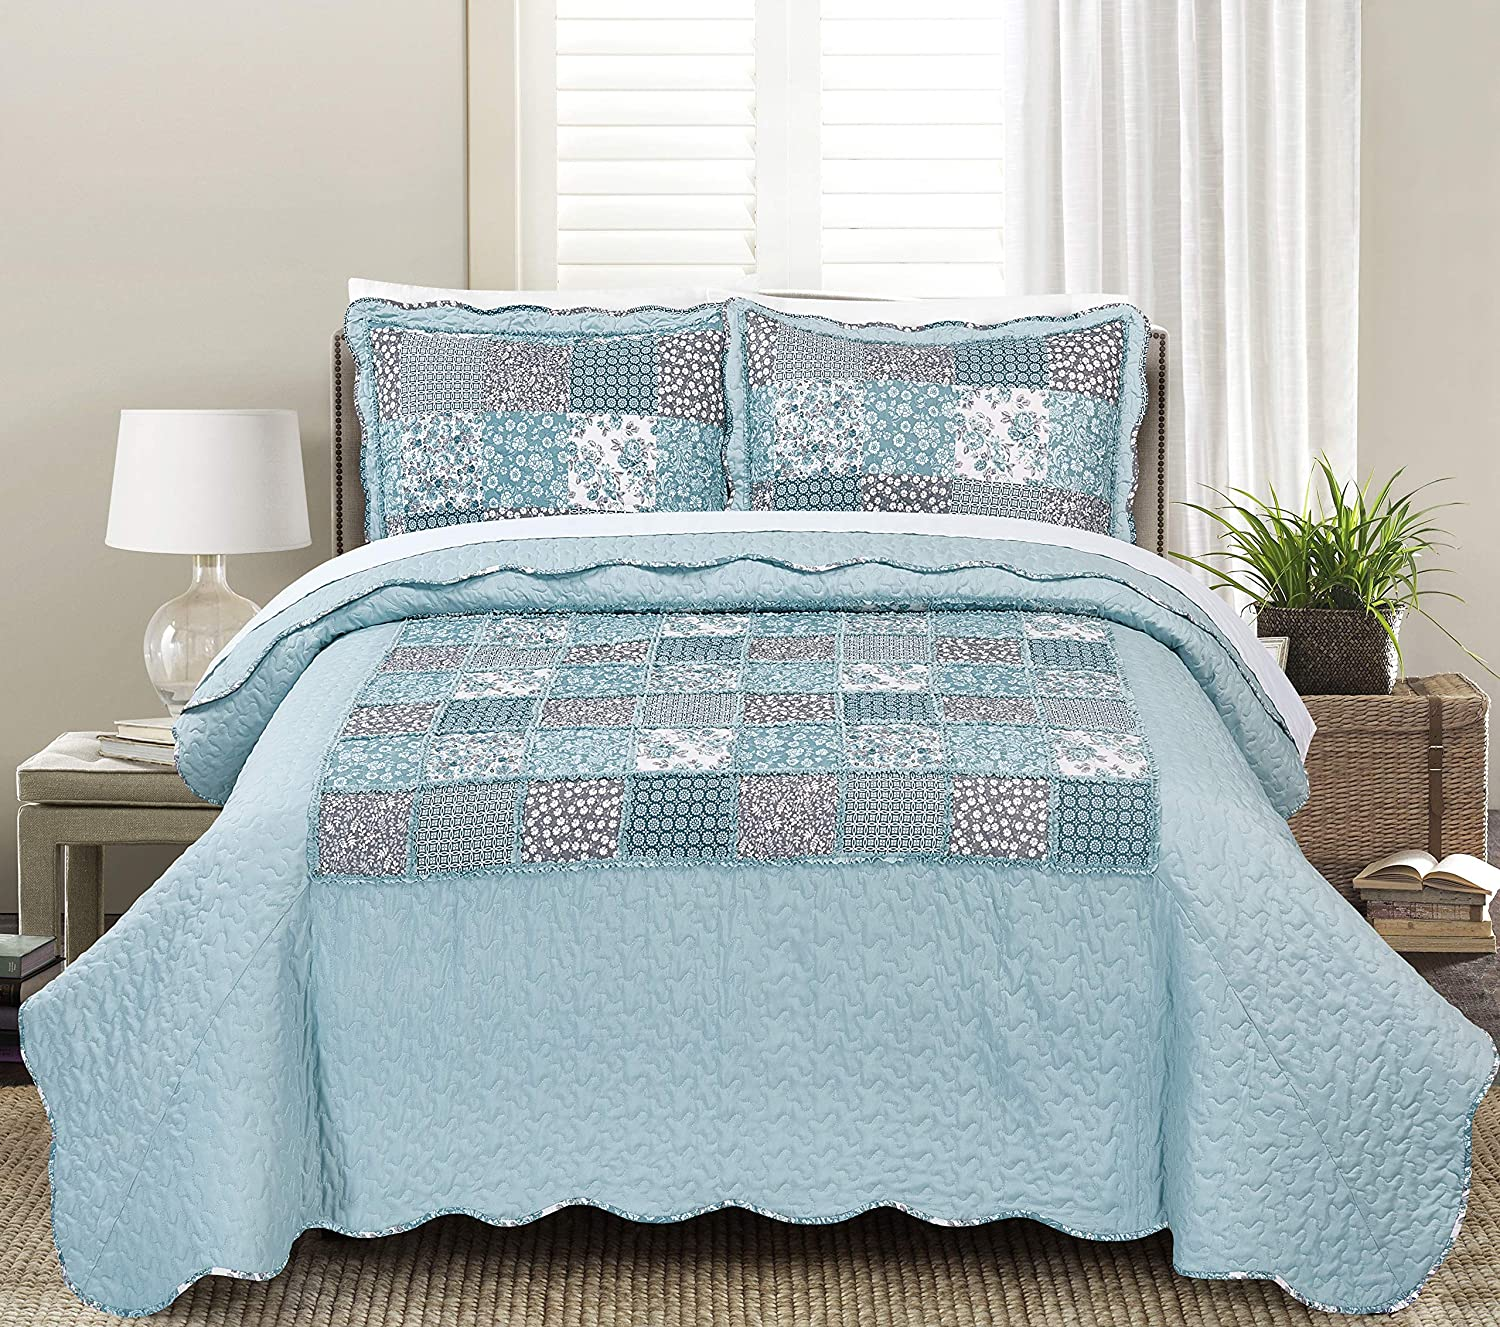 Geraldine Full Queen Blissful Living Luxury Ruffle Quilt Set Including Shams - Lightweight and Soft for all Seasons - Beatrice Lavender - King